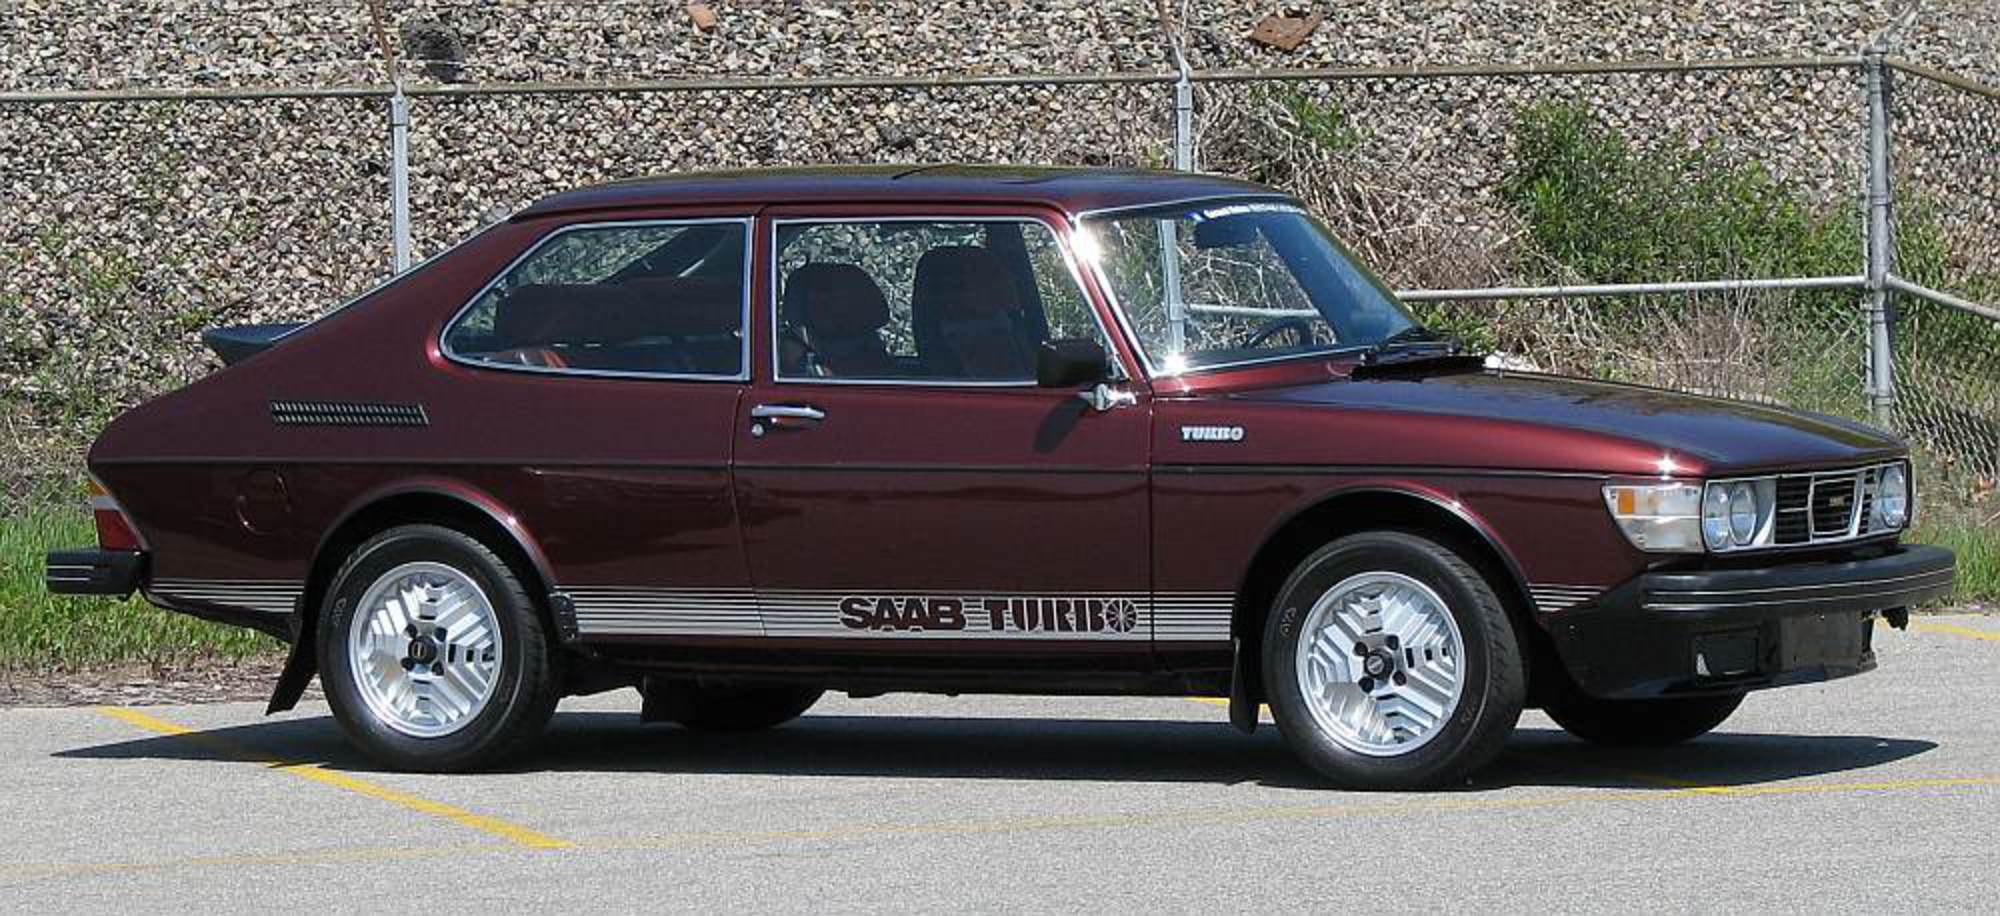 SAAB 99 TURBO. View Download Wallpaper. 1000x458. Comments